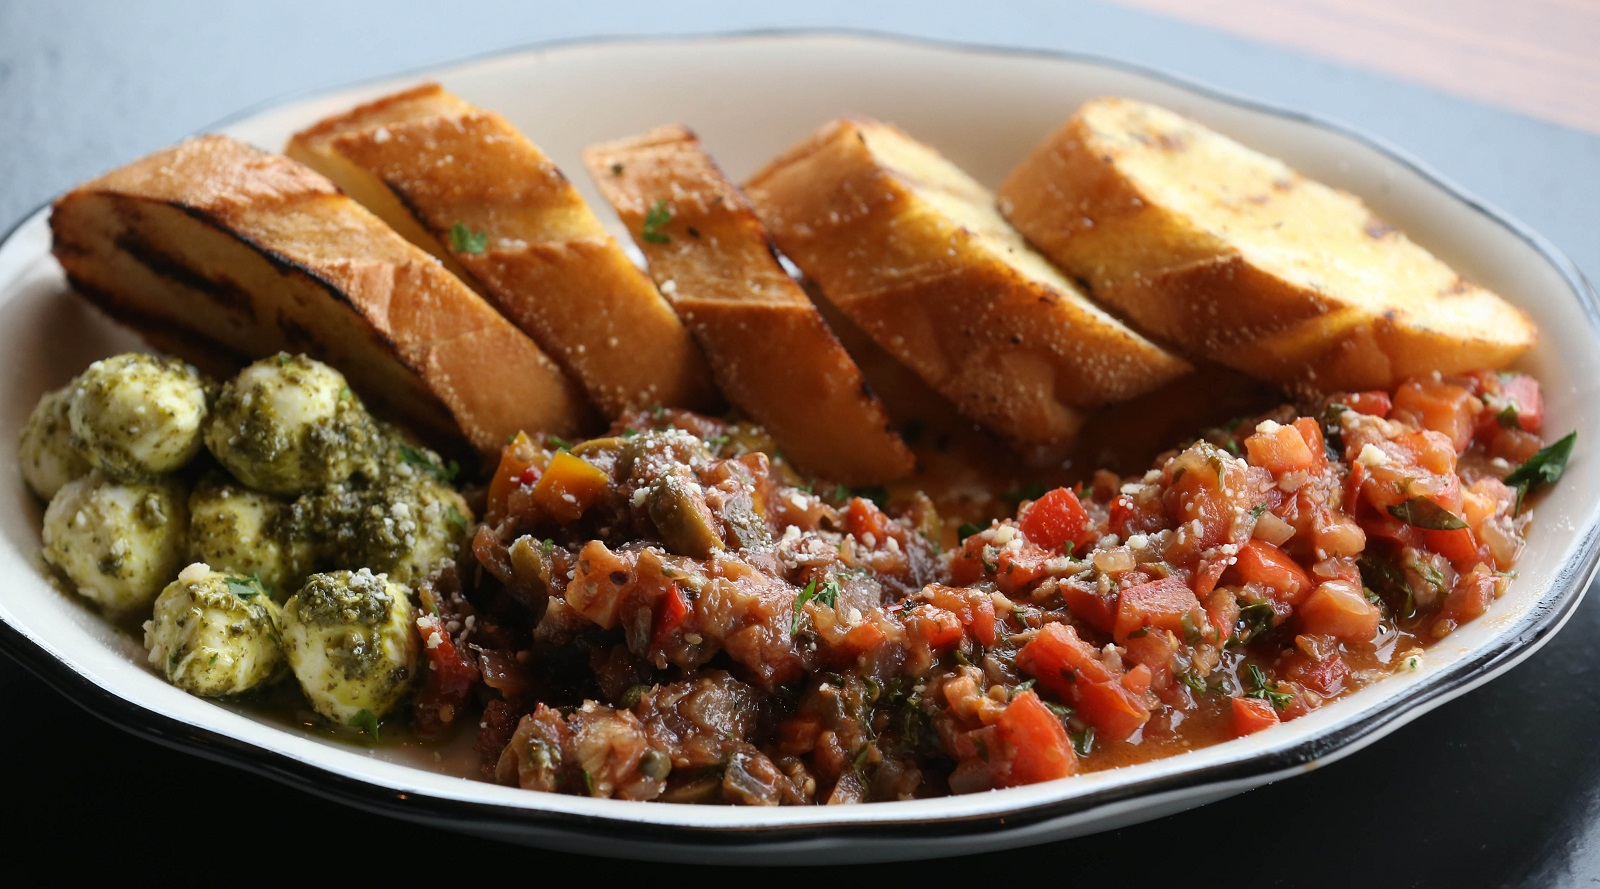 Giacobbi's Cucina Citta's bruschetta trio includes Ciliegine pesto, caponata and bruschetta tomatoes with grilled Italian bread and fresh grated romano. (Sharon Cantillon/Buffalo News)